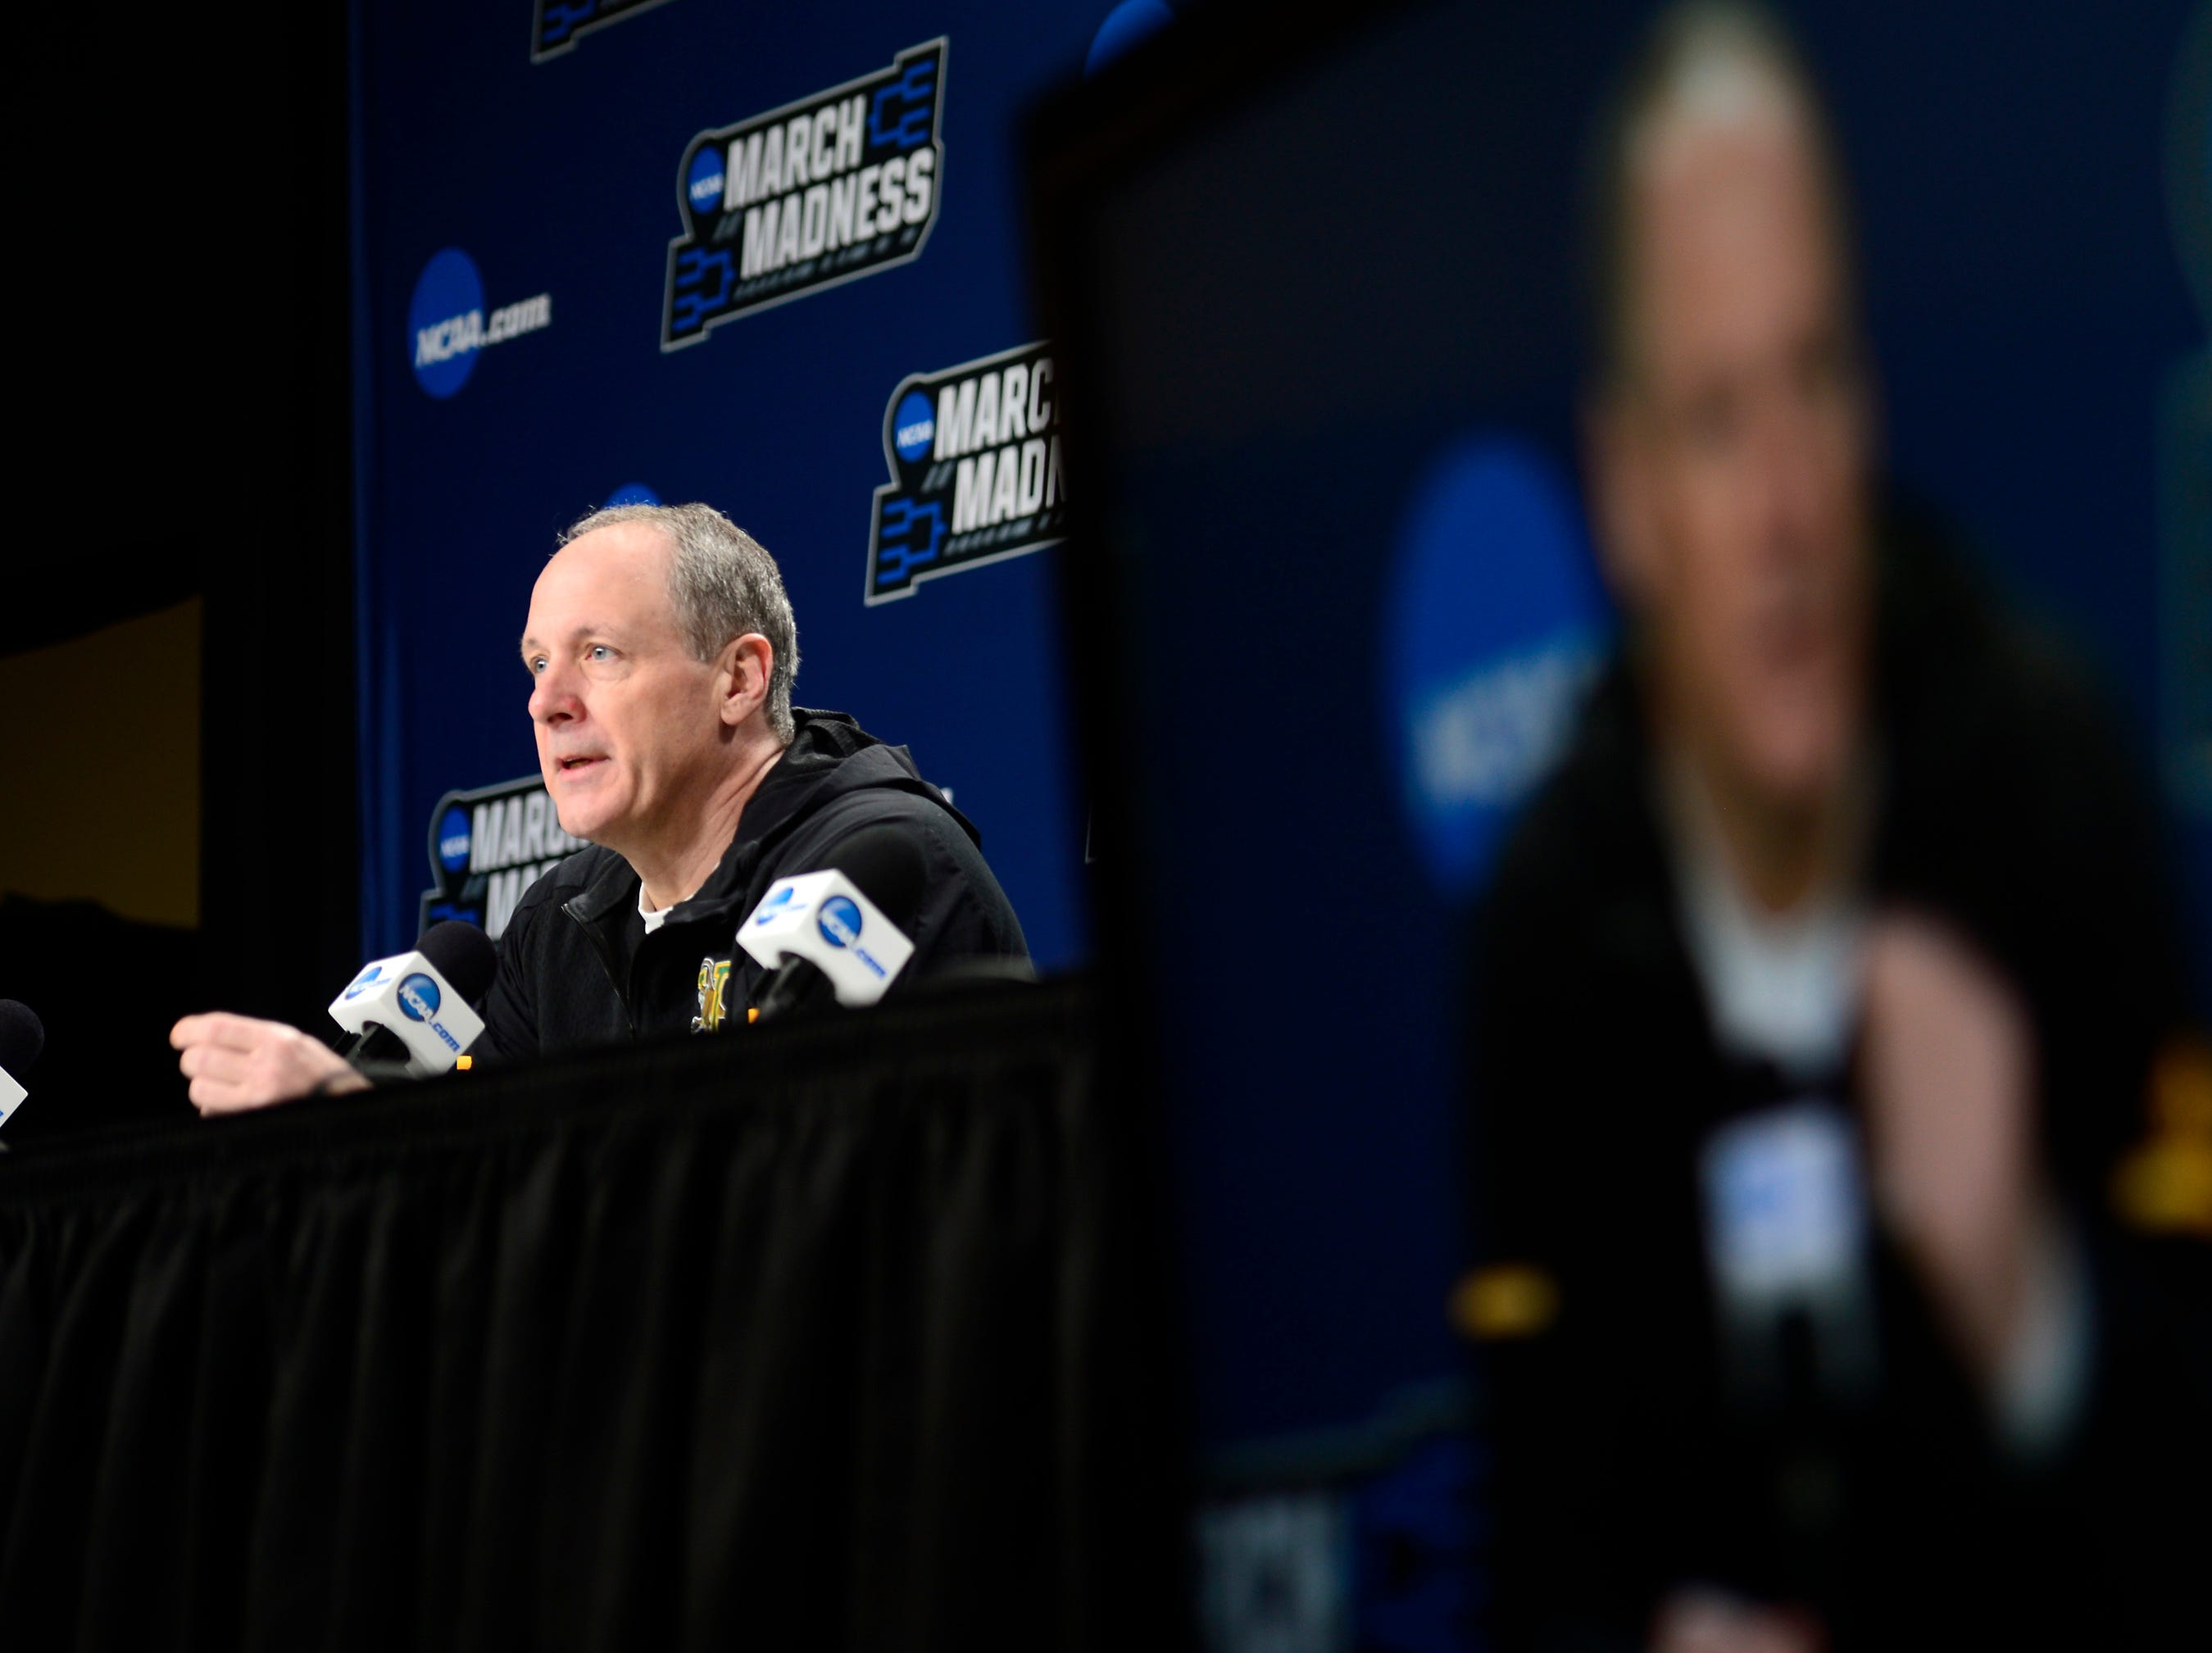 Vermont head coach John Becker speaks to the media on Wednesday ahead of the Catamounts' NCAA tournament game at the XL Center in Hartford, Connecticut.